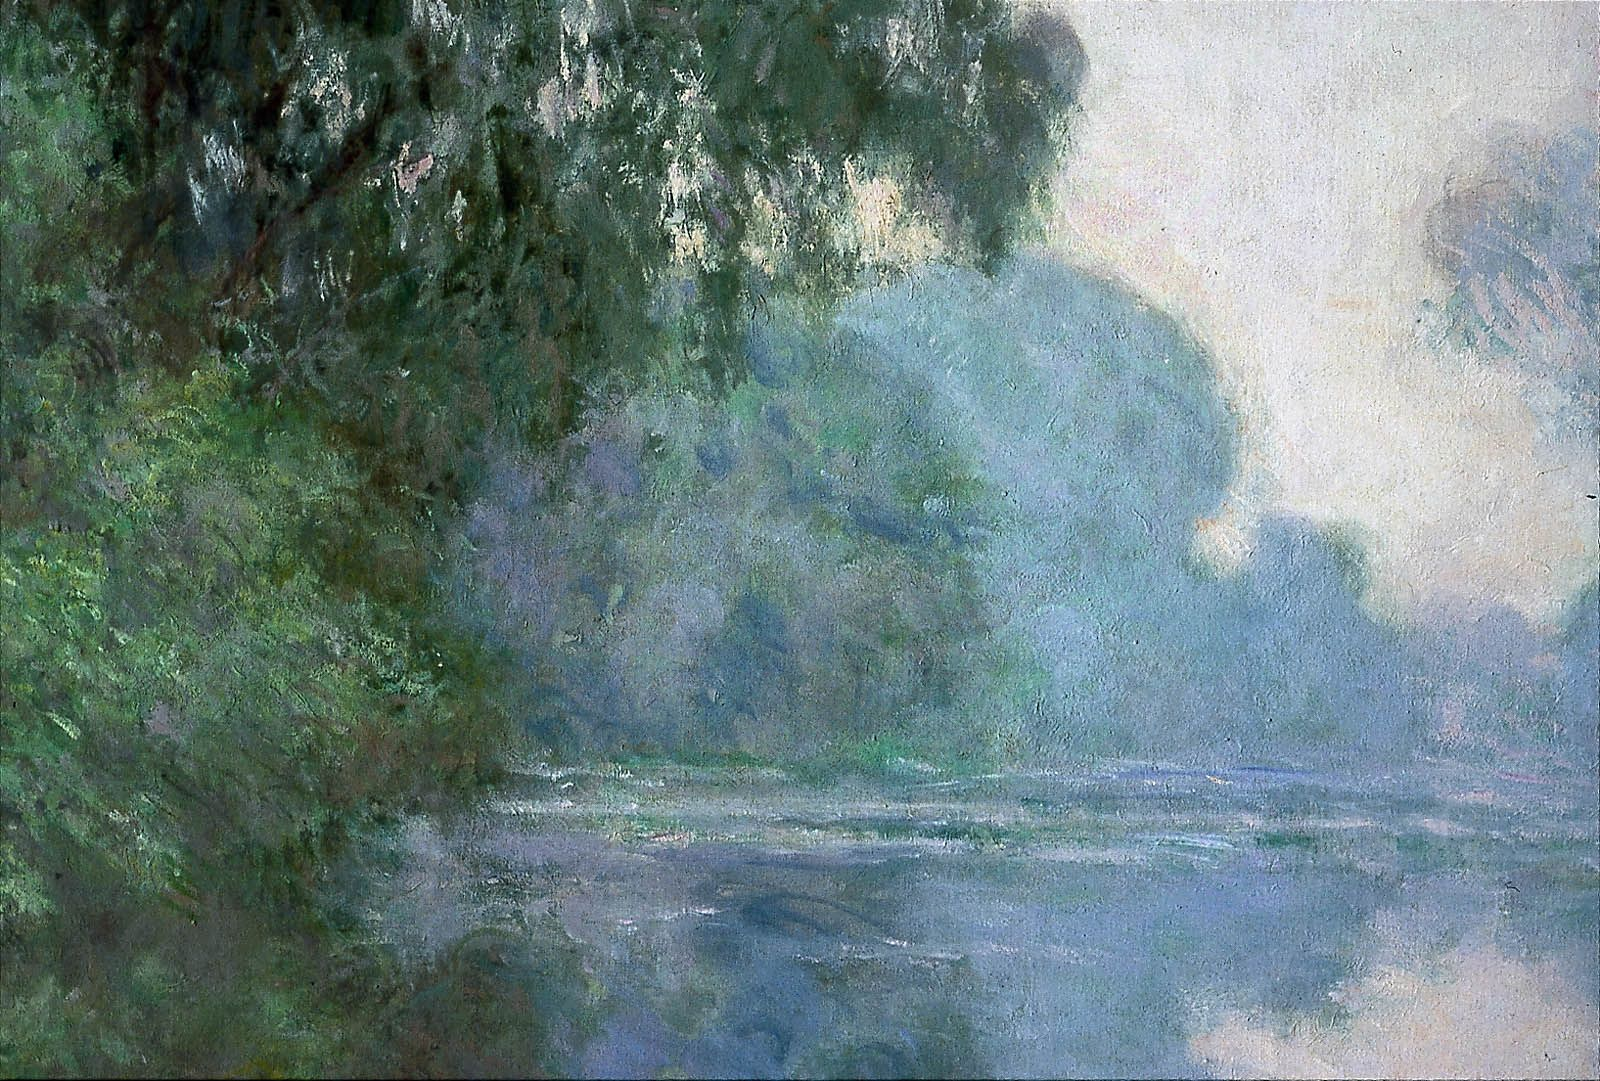 Morning on the Seine, near Giverny | Monet oil paintings, Giverny, Claude  monet